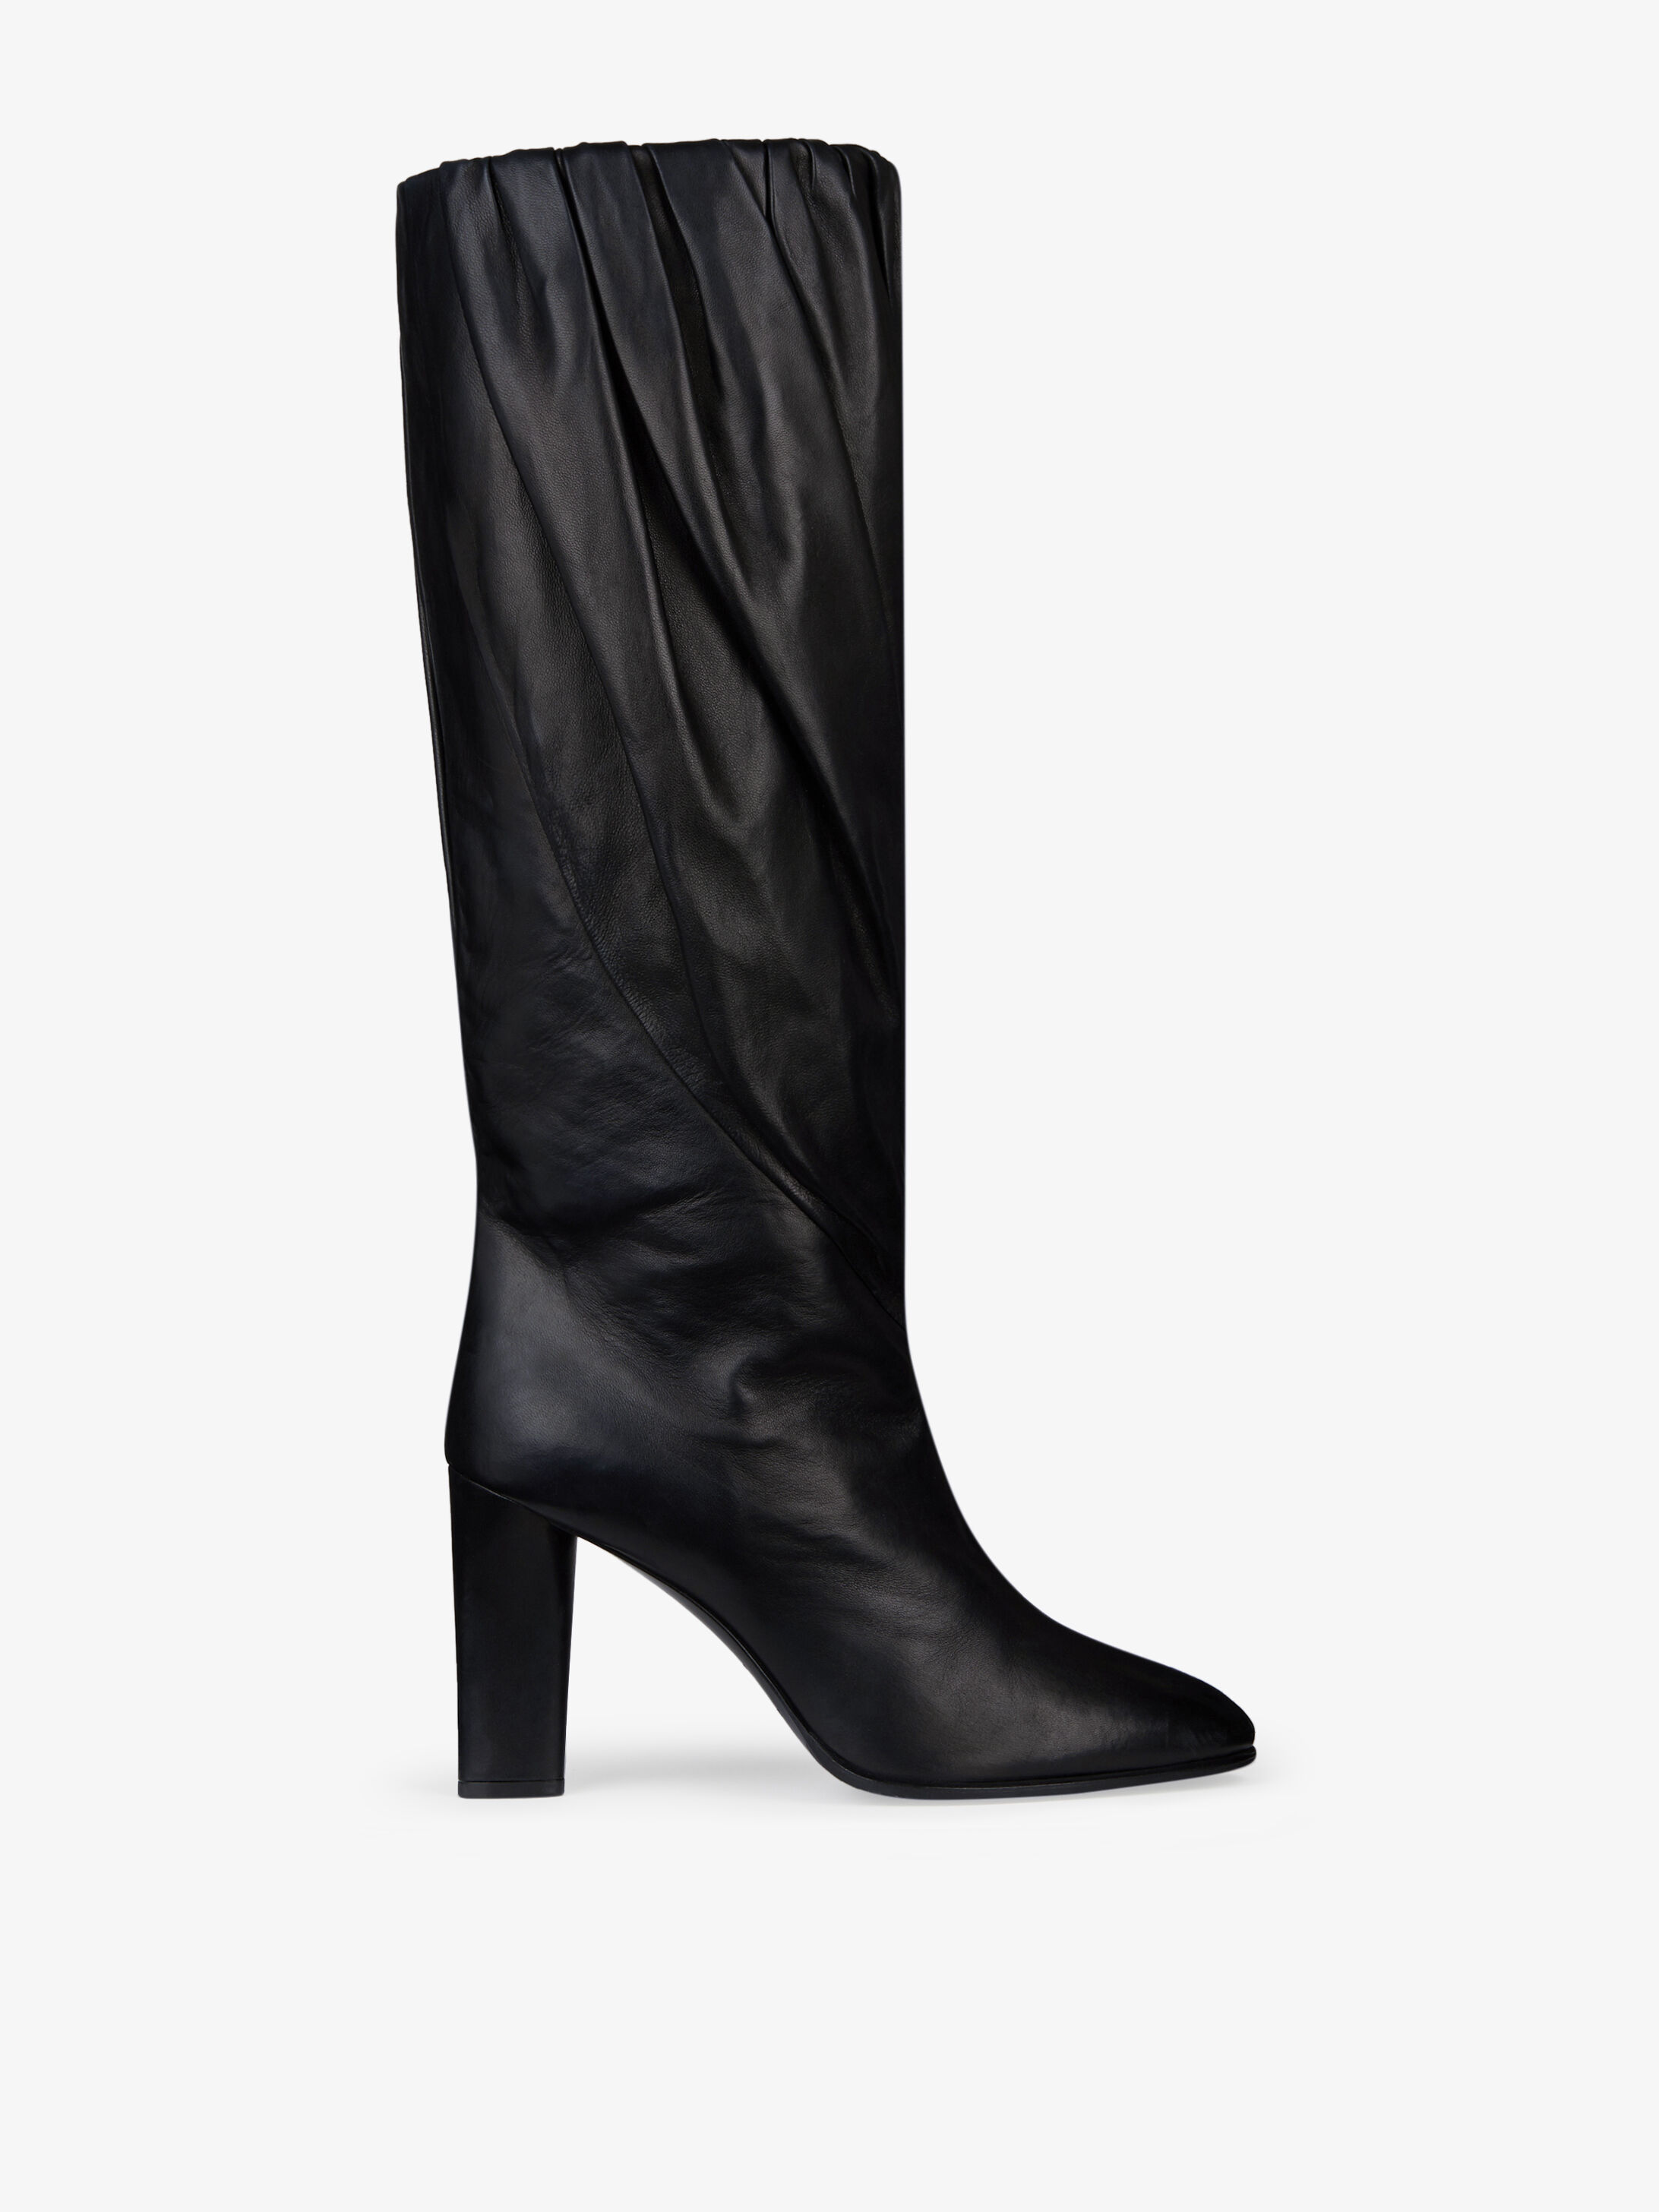 f71145fd541 Women's Boots collection by Givenchy. | GIVENCHY Paris